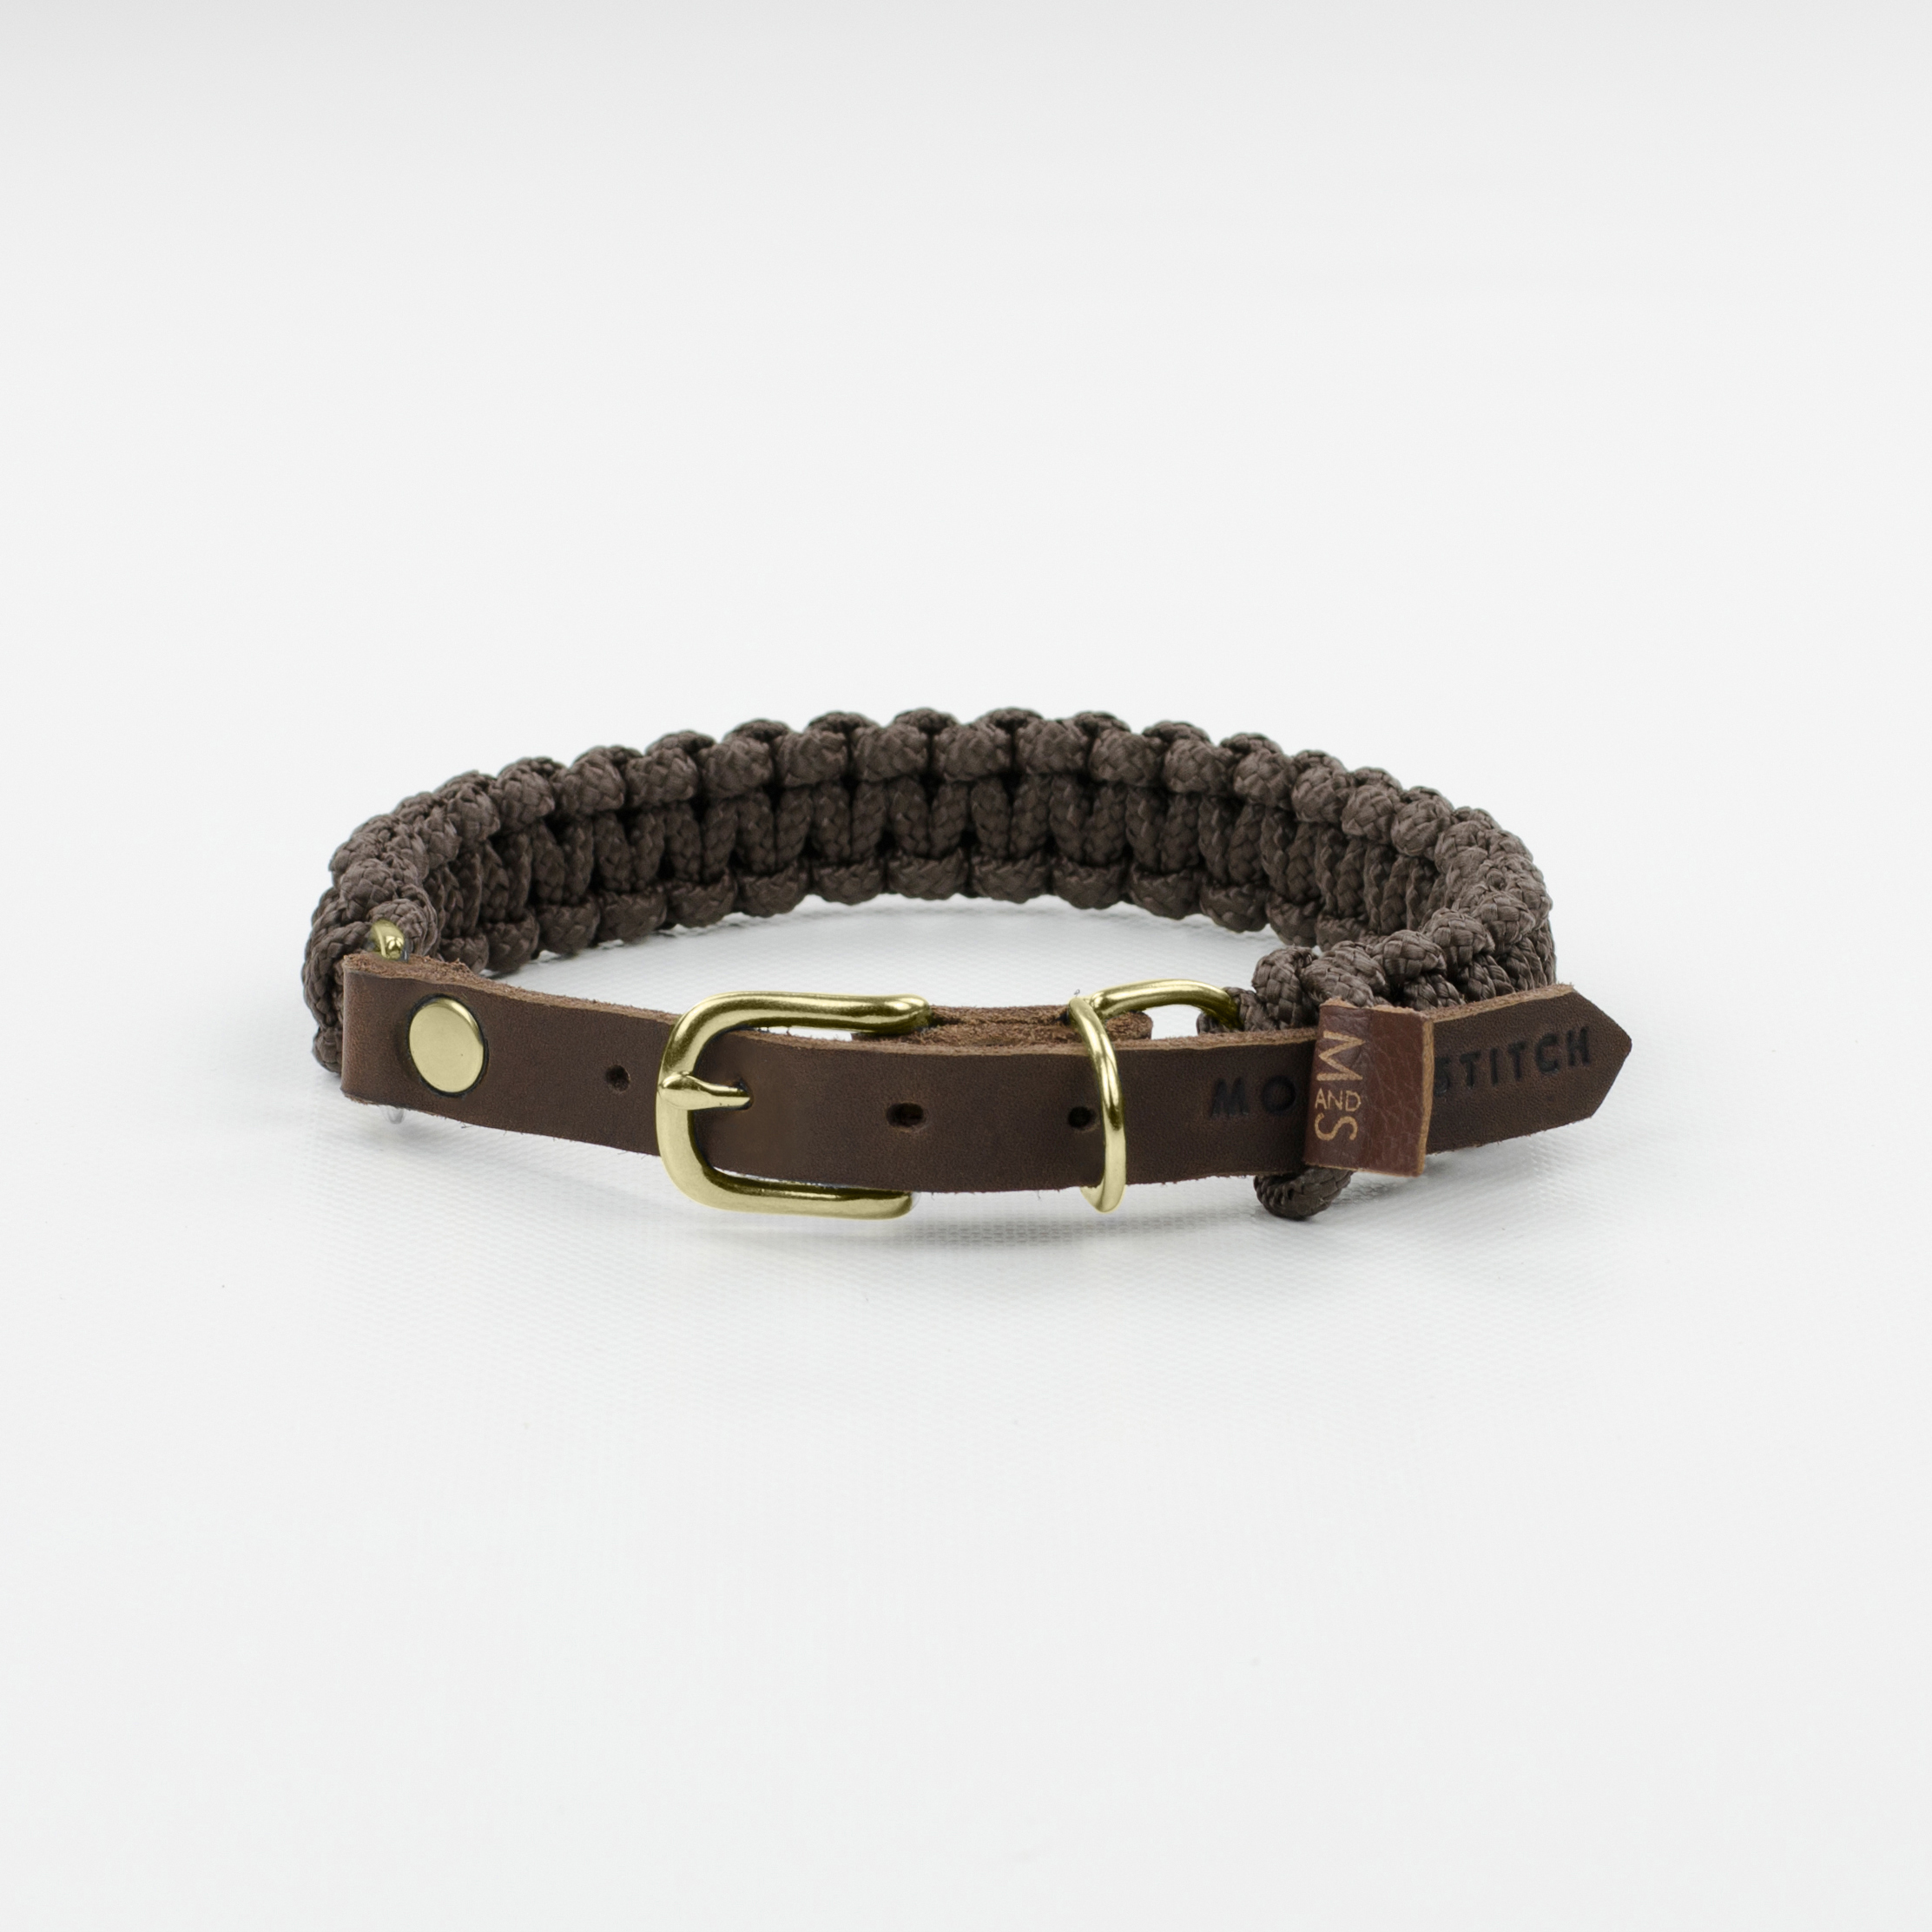 Hundehalsband gold touch-of-leather-dog-collar-chocolate